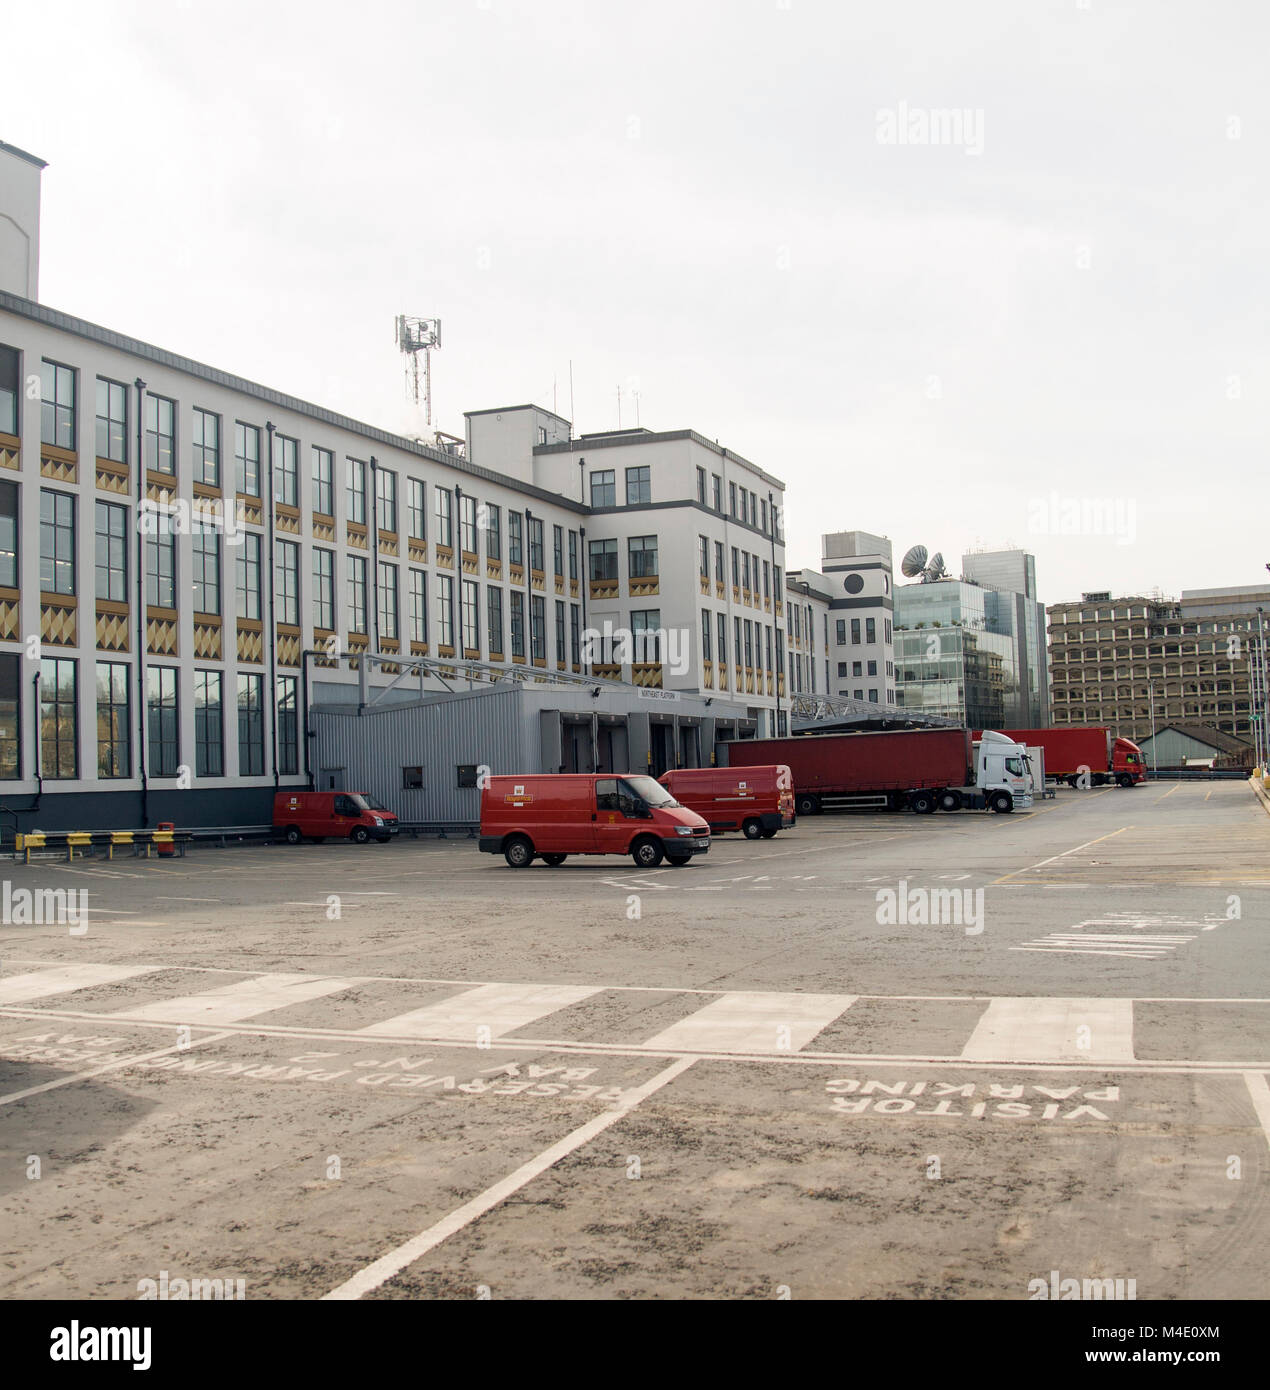 Colour Photograph of Mount Pleasant Sorting Offices, The site has previously operated as one of the largest sorting - Stock Image